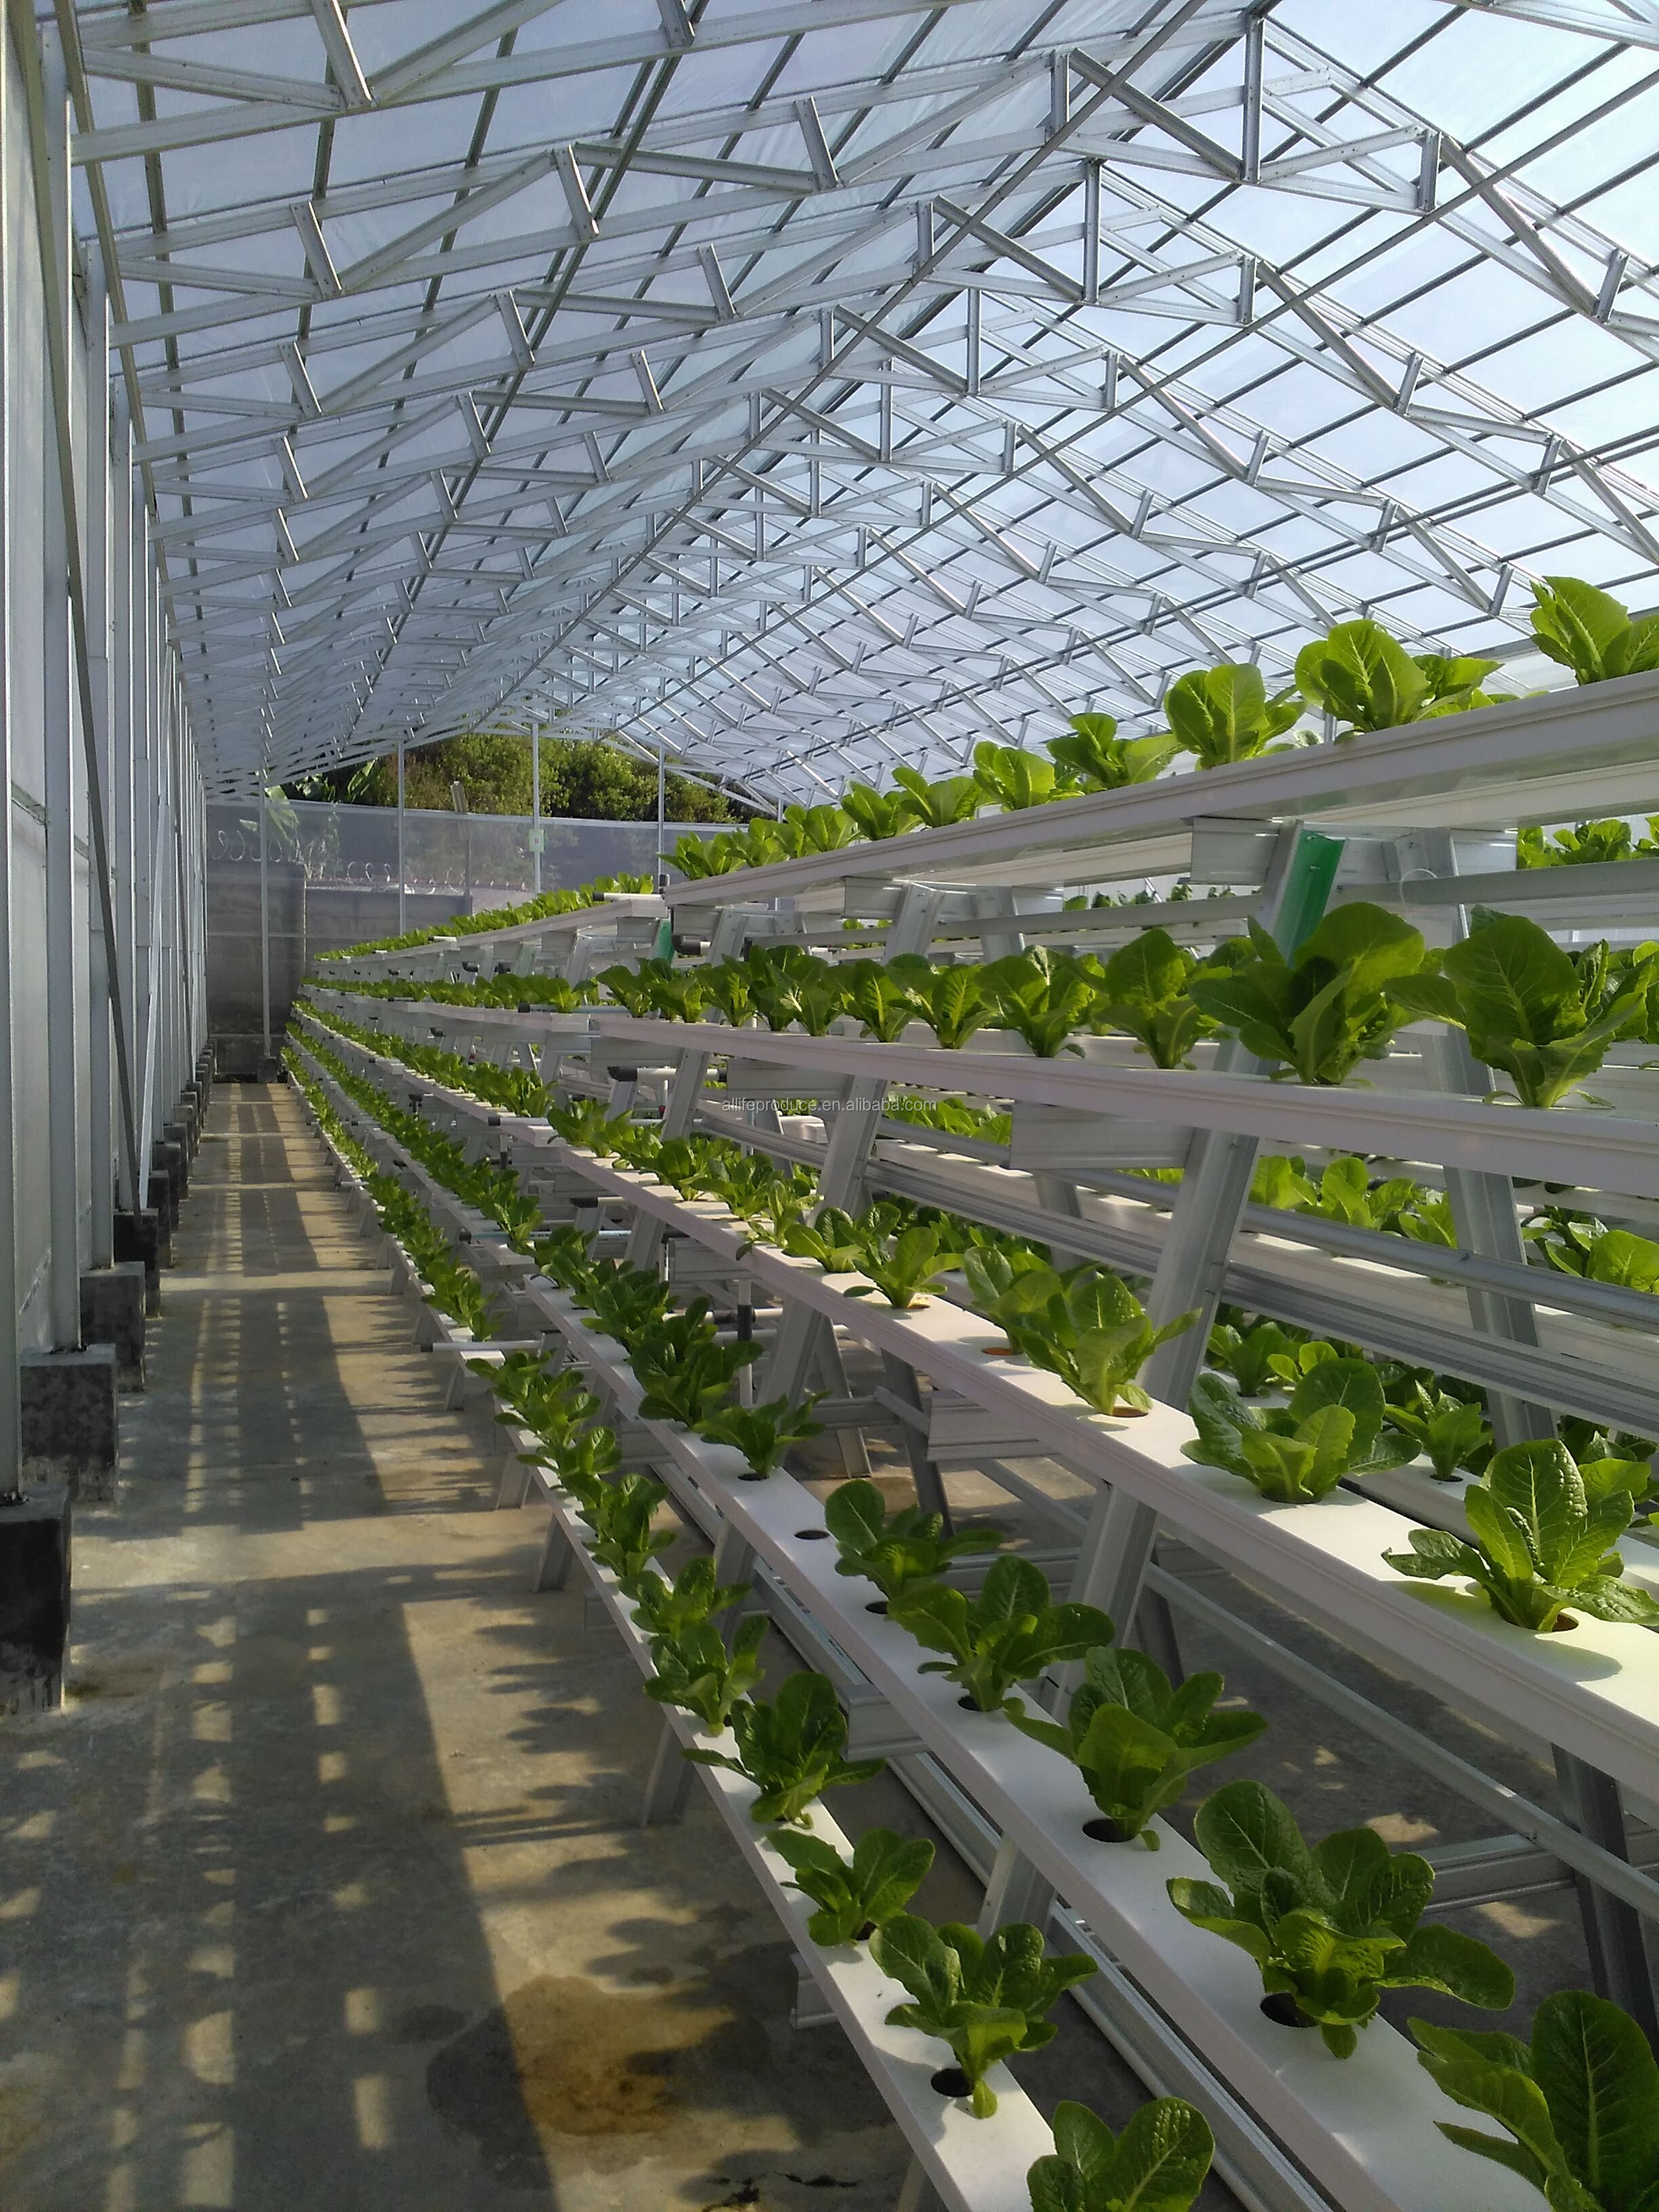 Plastic Pvc Pipe Hydroponic Nft Grow Gutter System For